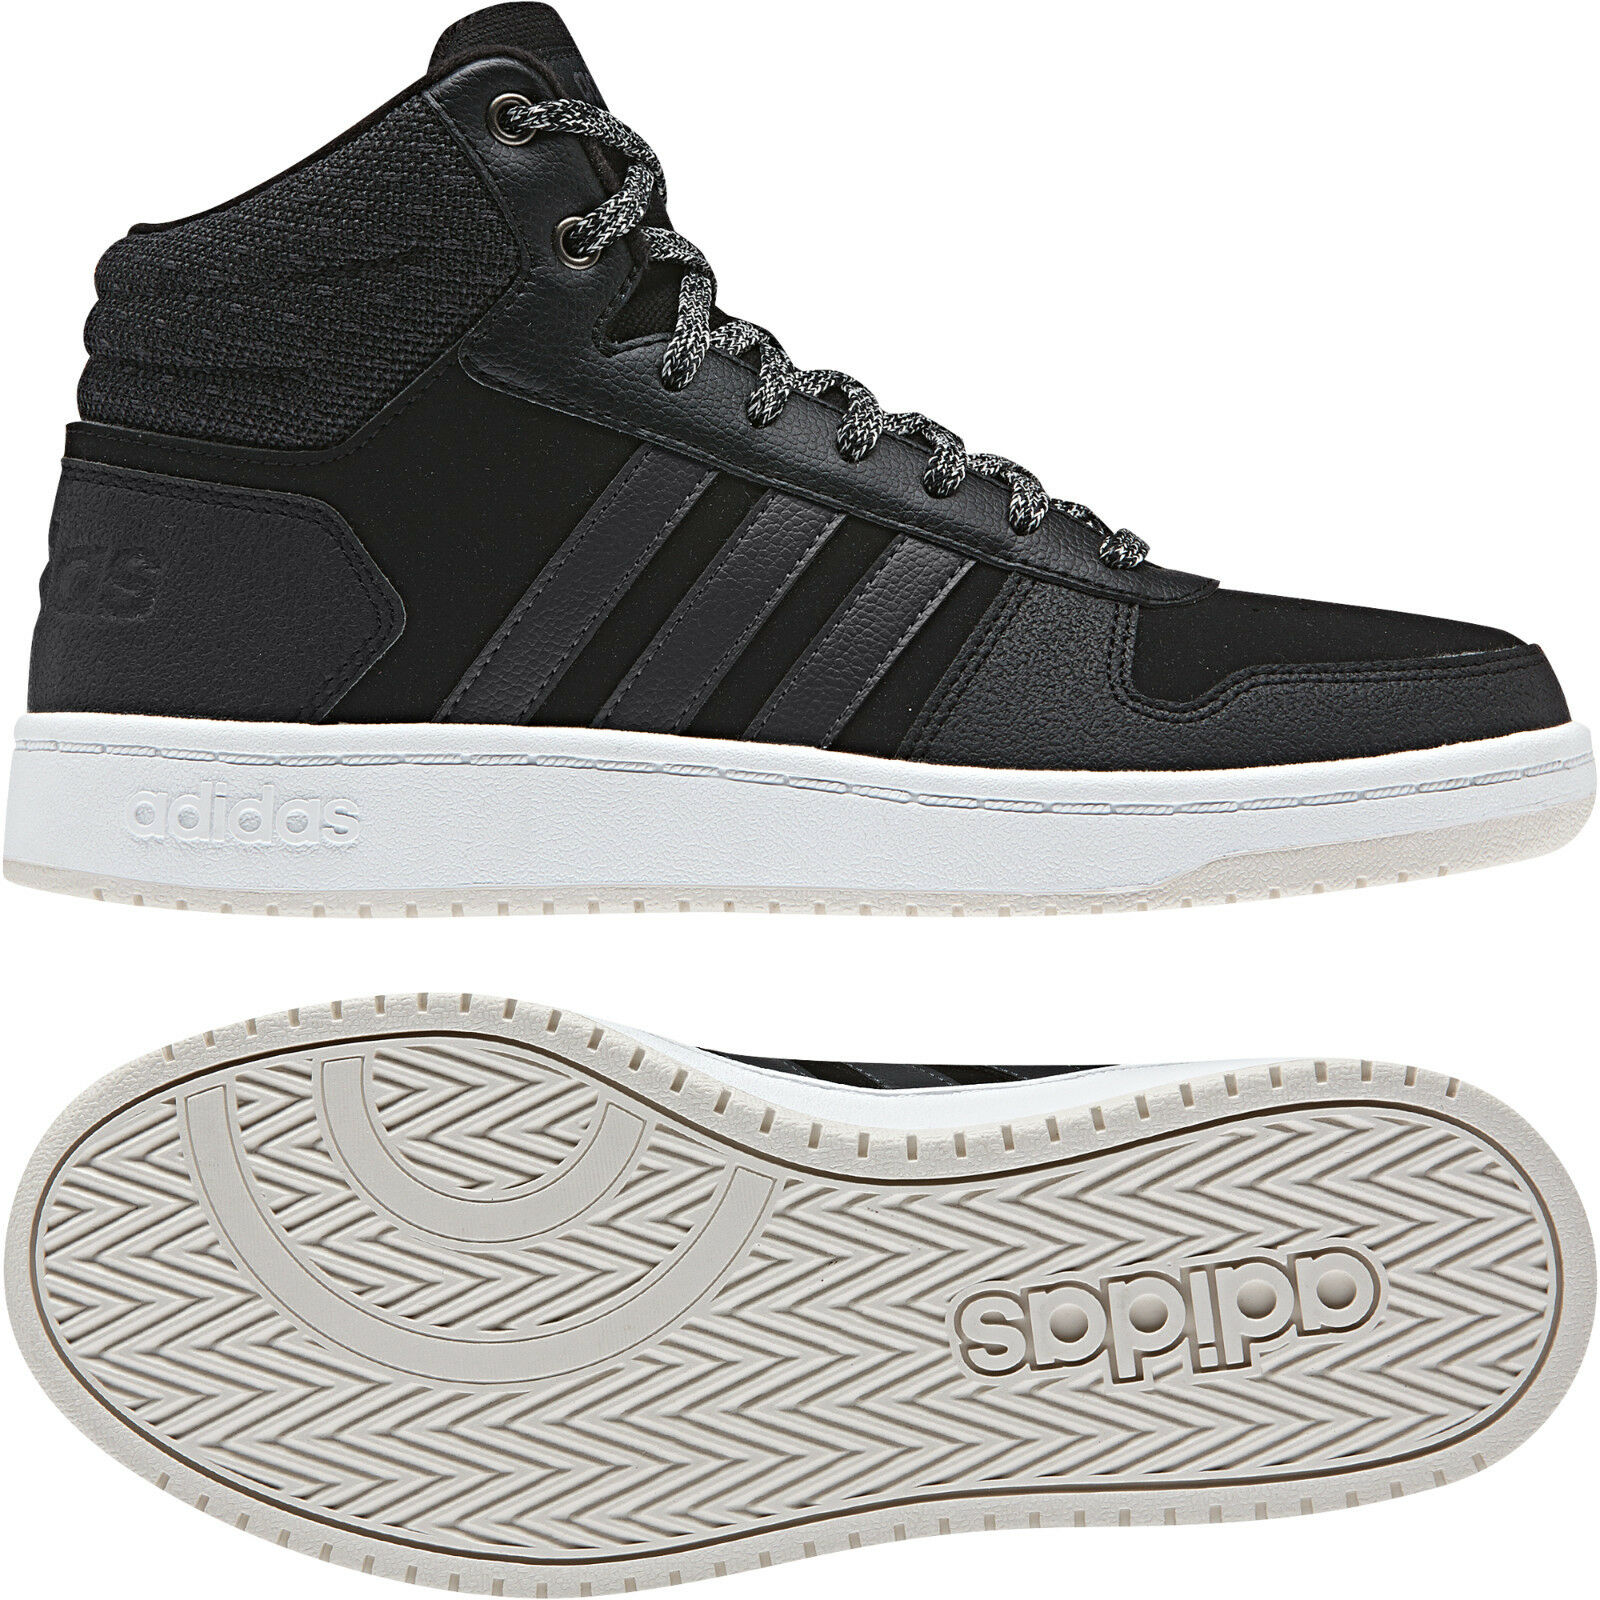 e10e2462dad40d Adidas Women shoes Casual Sneakers Fashion Hoops Mid Trainers Running  B42110 New